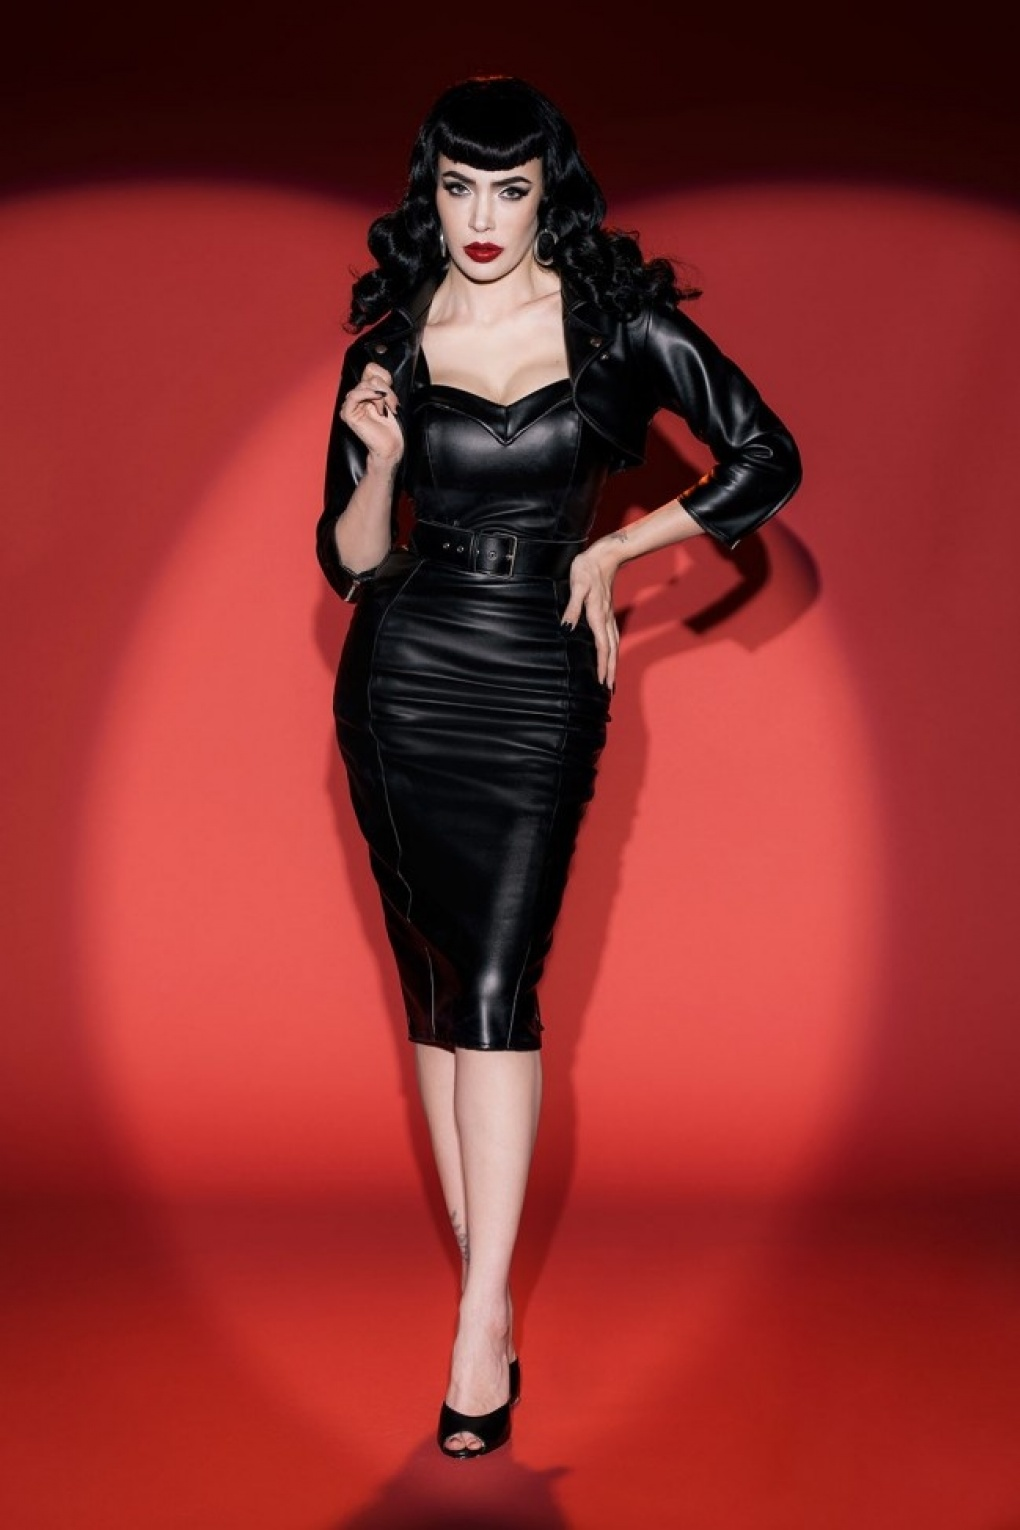 50s deadly dames downtown dame dress in black faux leather